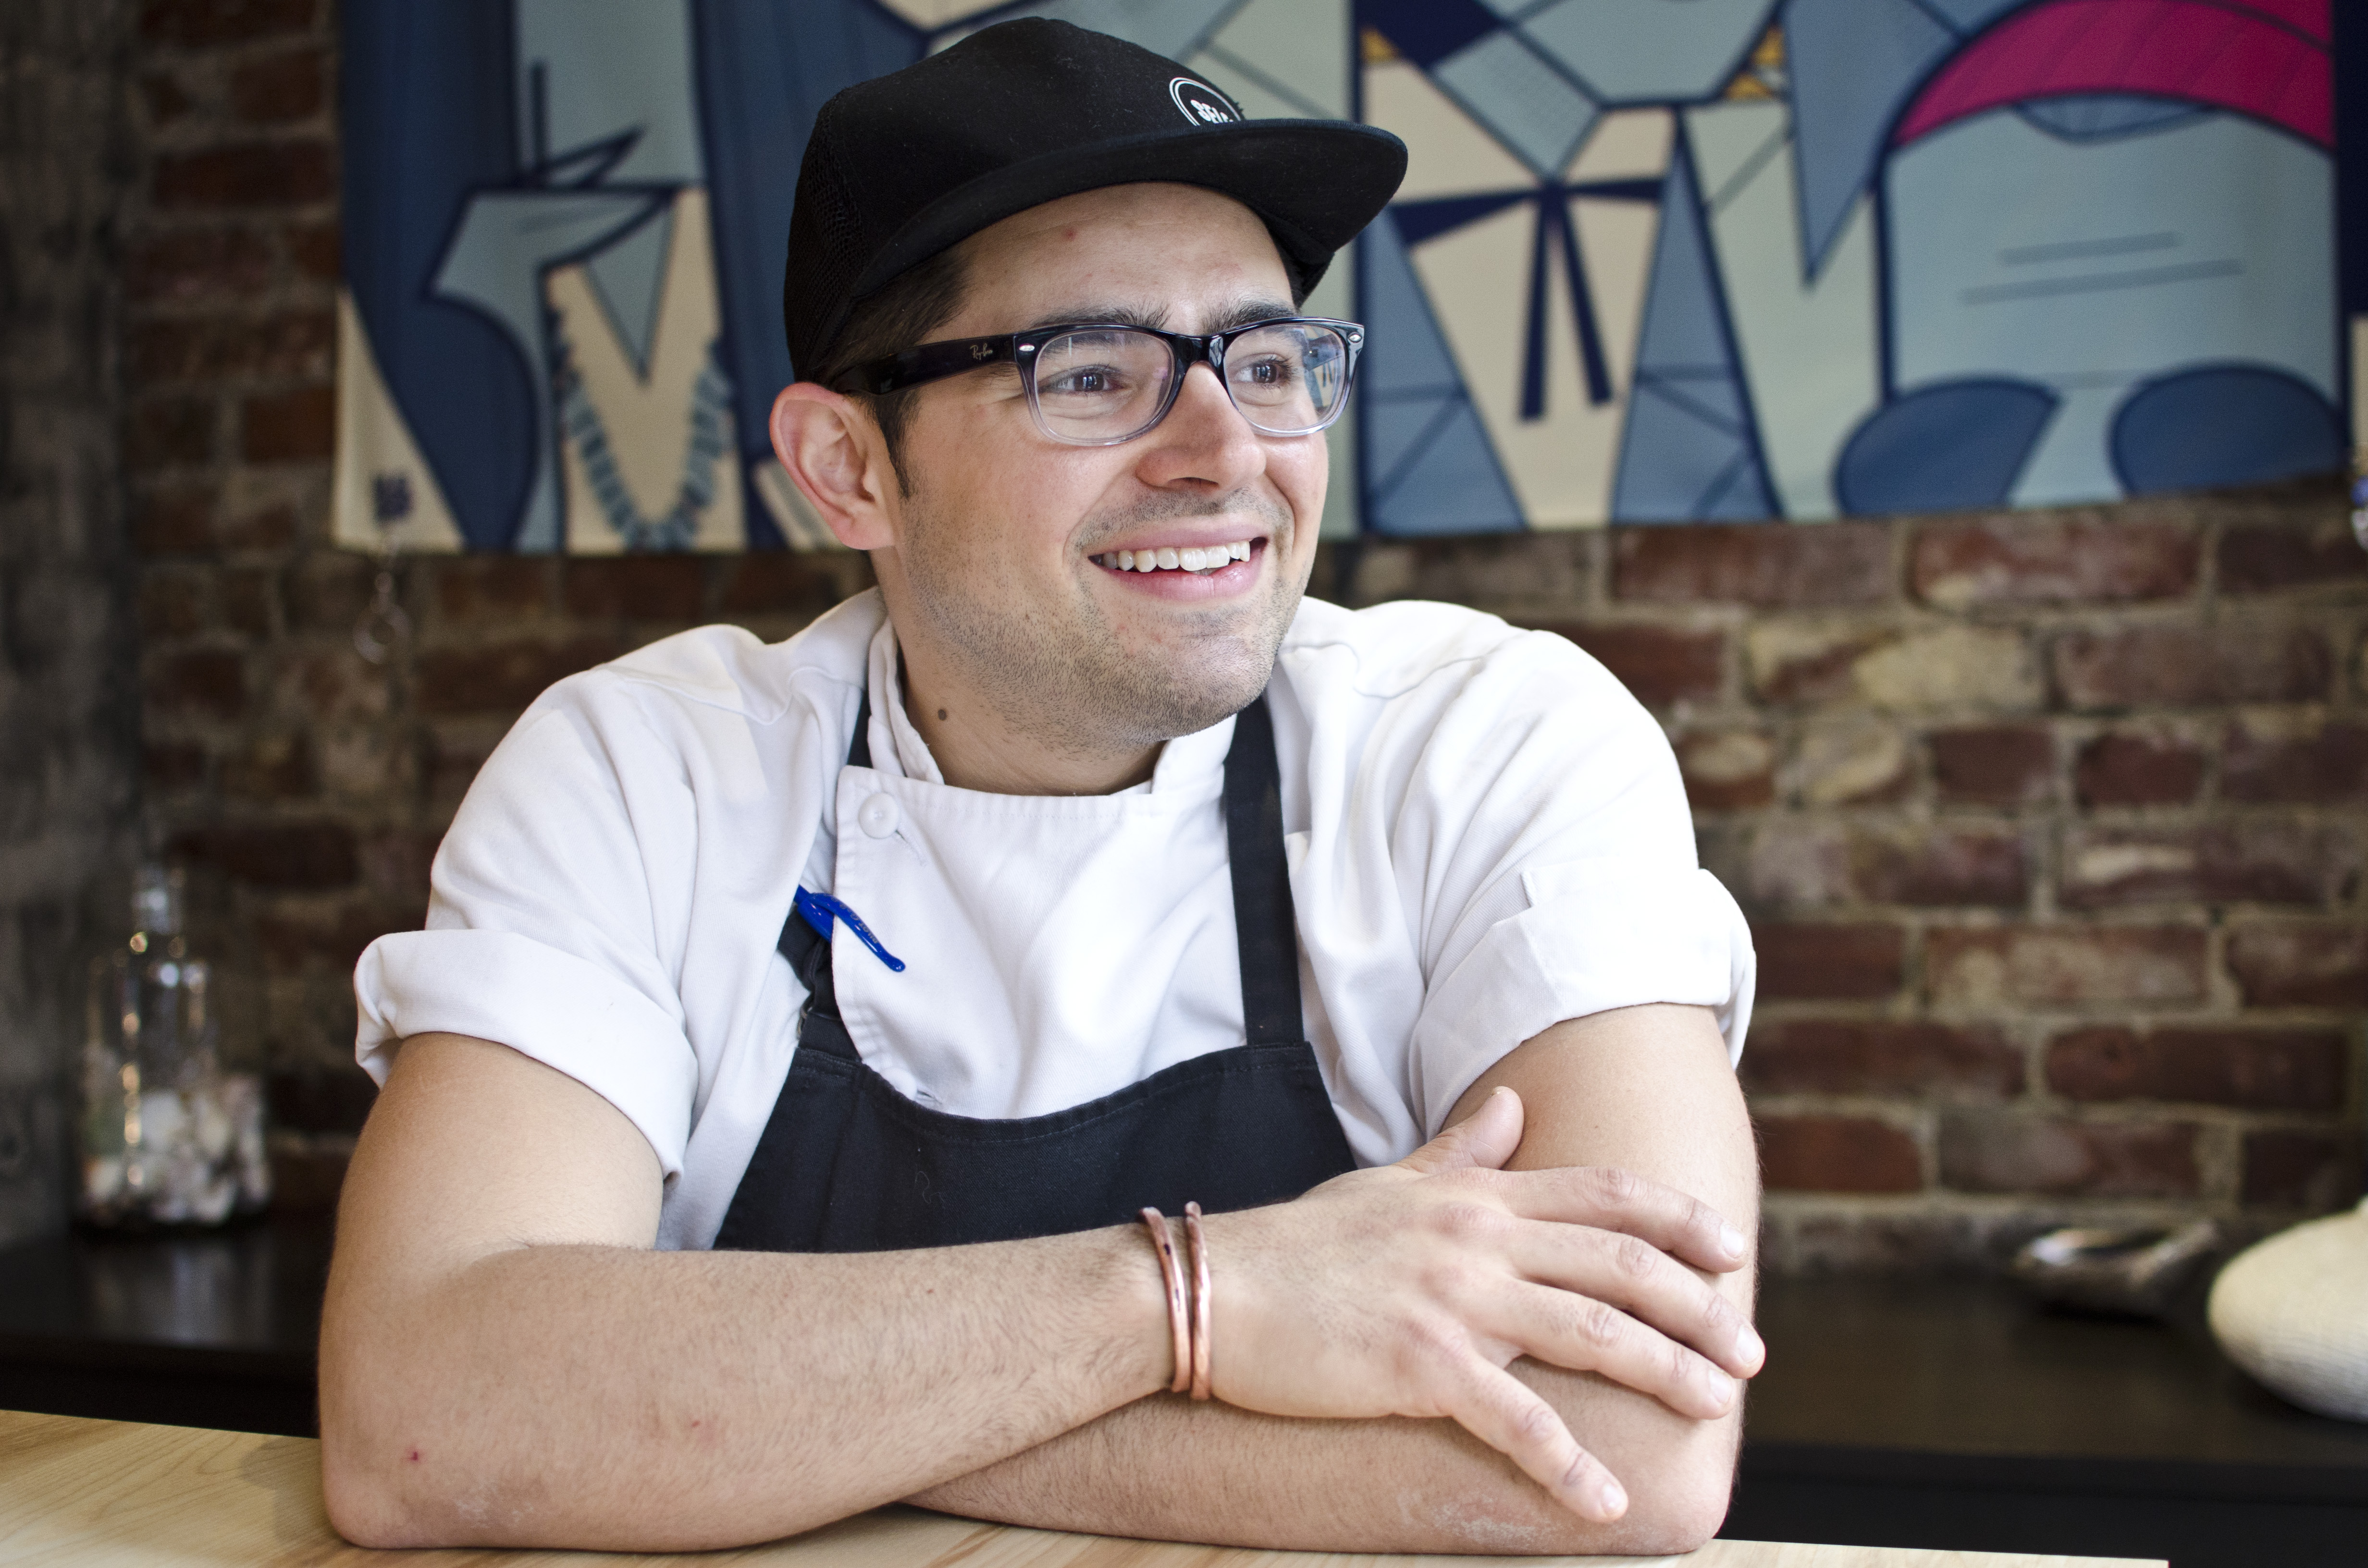 Portrait of a chef wearing glasses, a black apron, a white shirt, and a black baseball cap. He sits in front of a brick wall, arms crossed, looking off to the side and smiling.